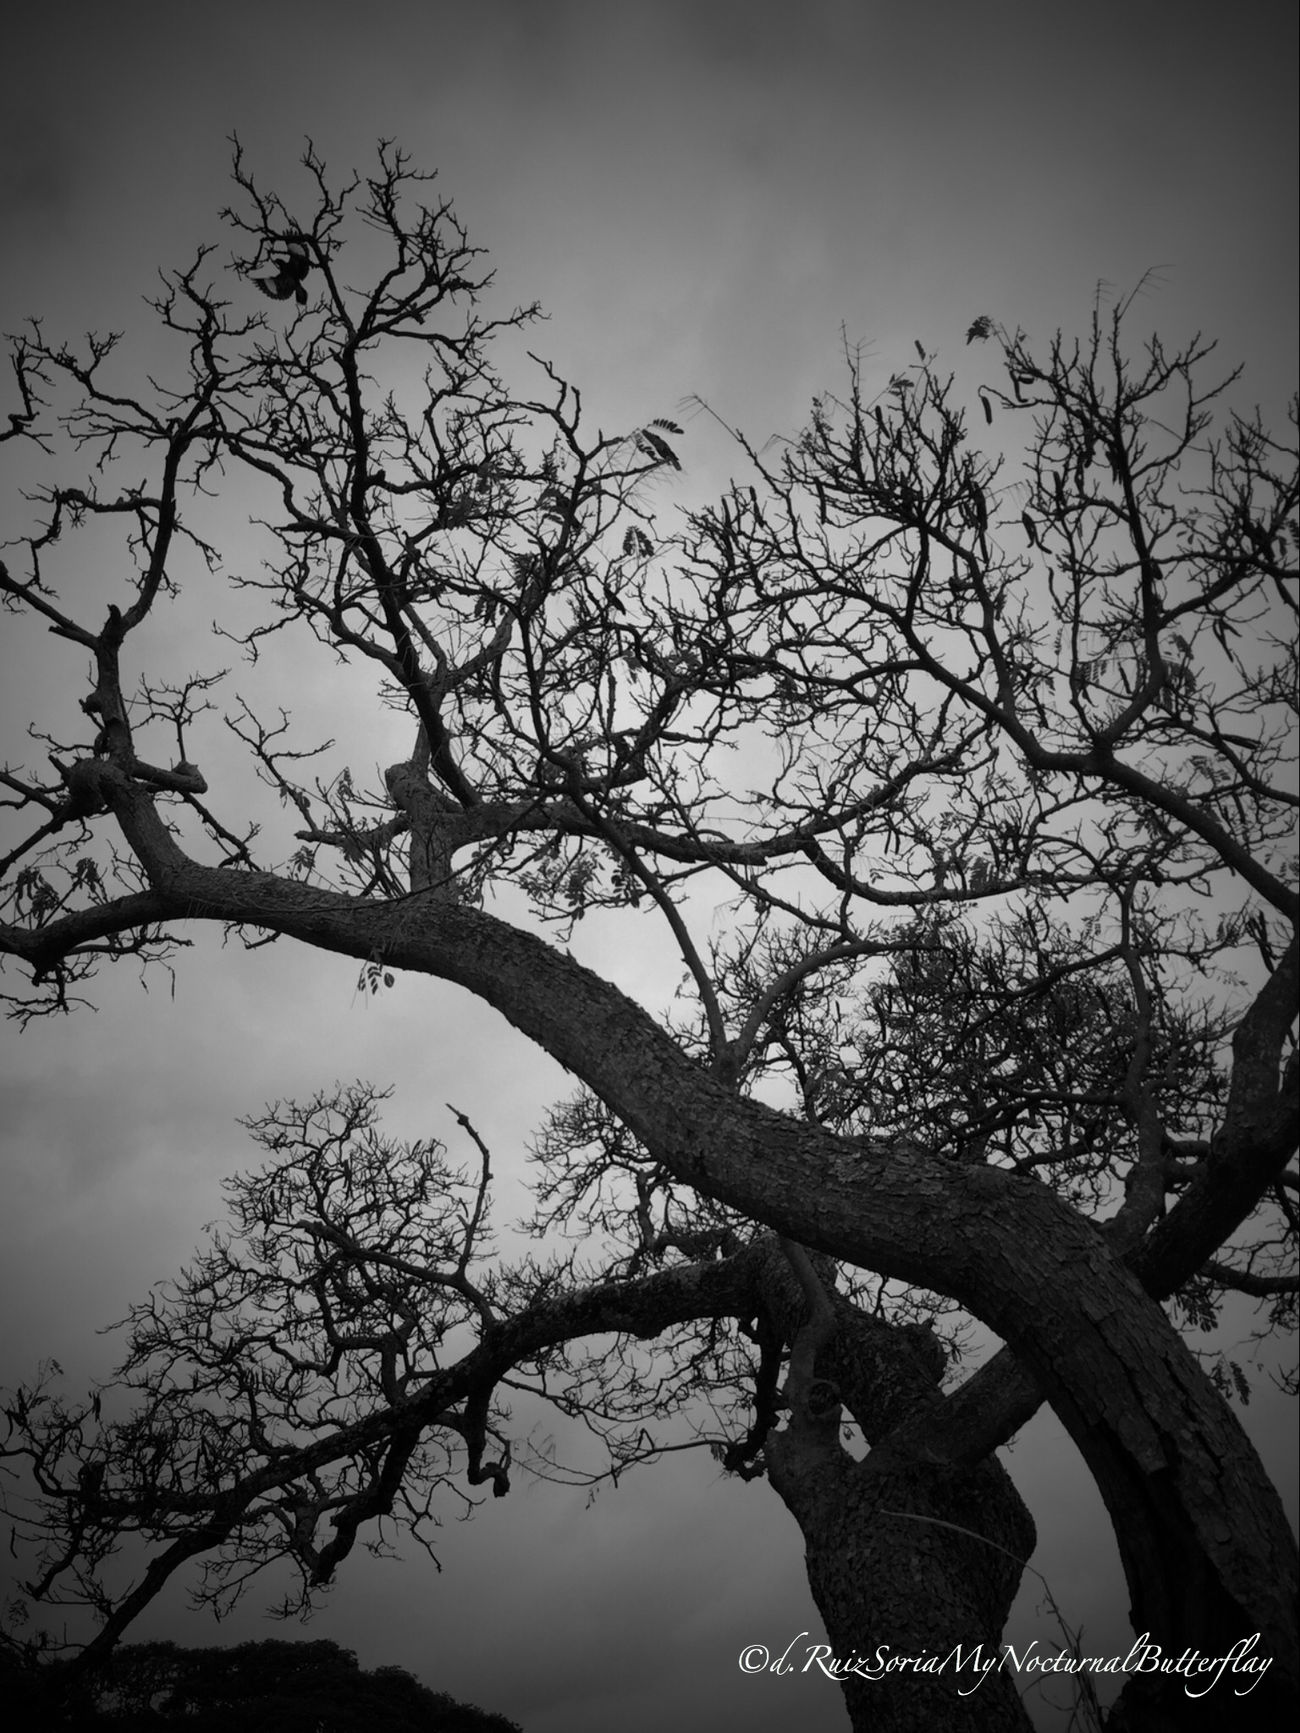 Black And White EyeEm Best Shots - Black + White EyeEm Nature Lover Bw_collection Texture Nature_collection Hitchcockian TreePorn My Nocturnal Illusions Darkart